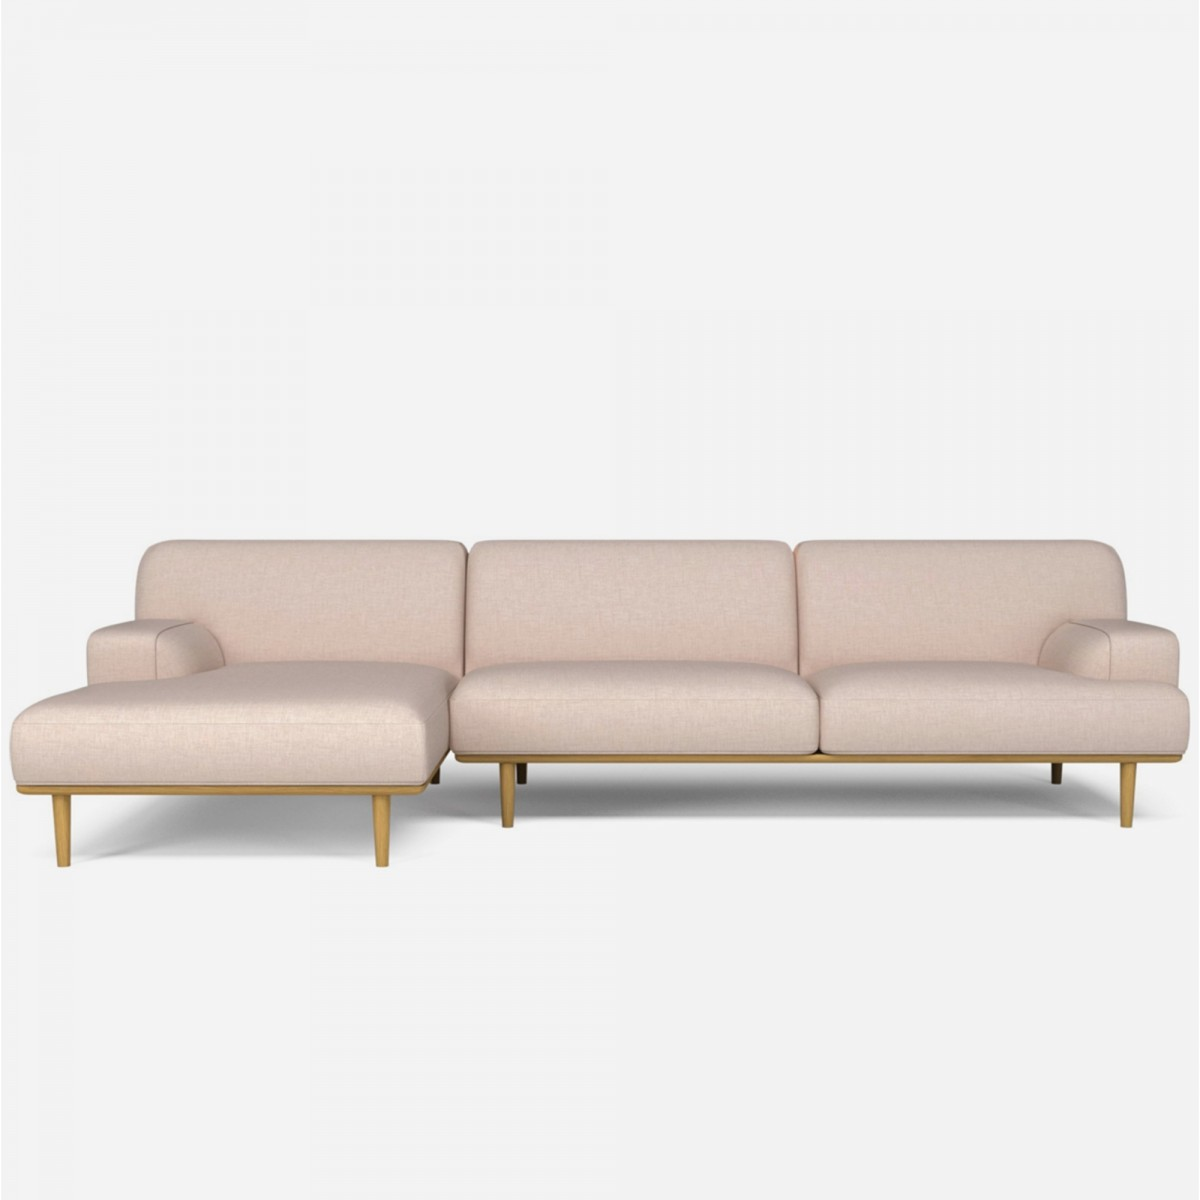 Madison with chaise longue bolia for Chaise longue sofa cama